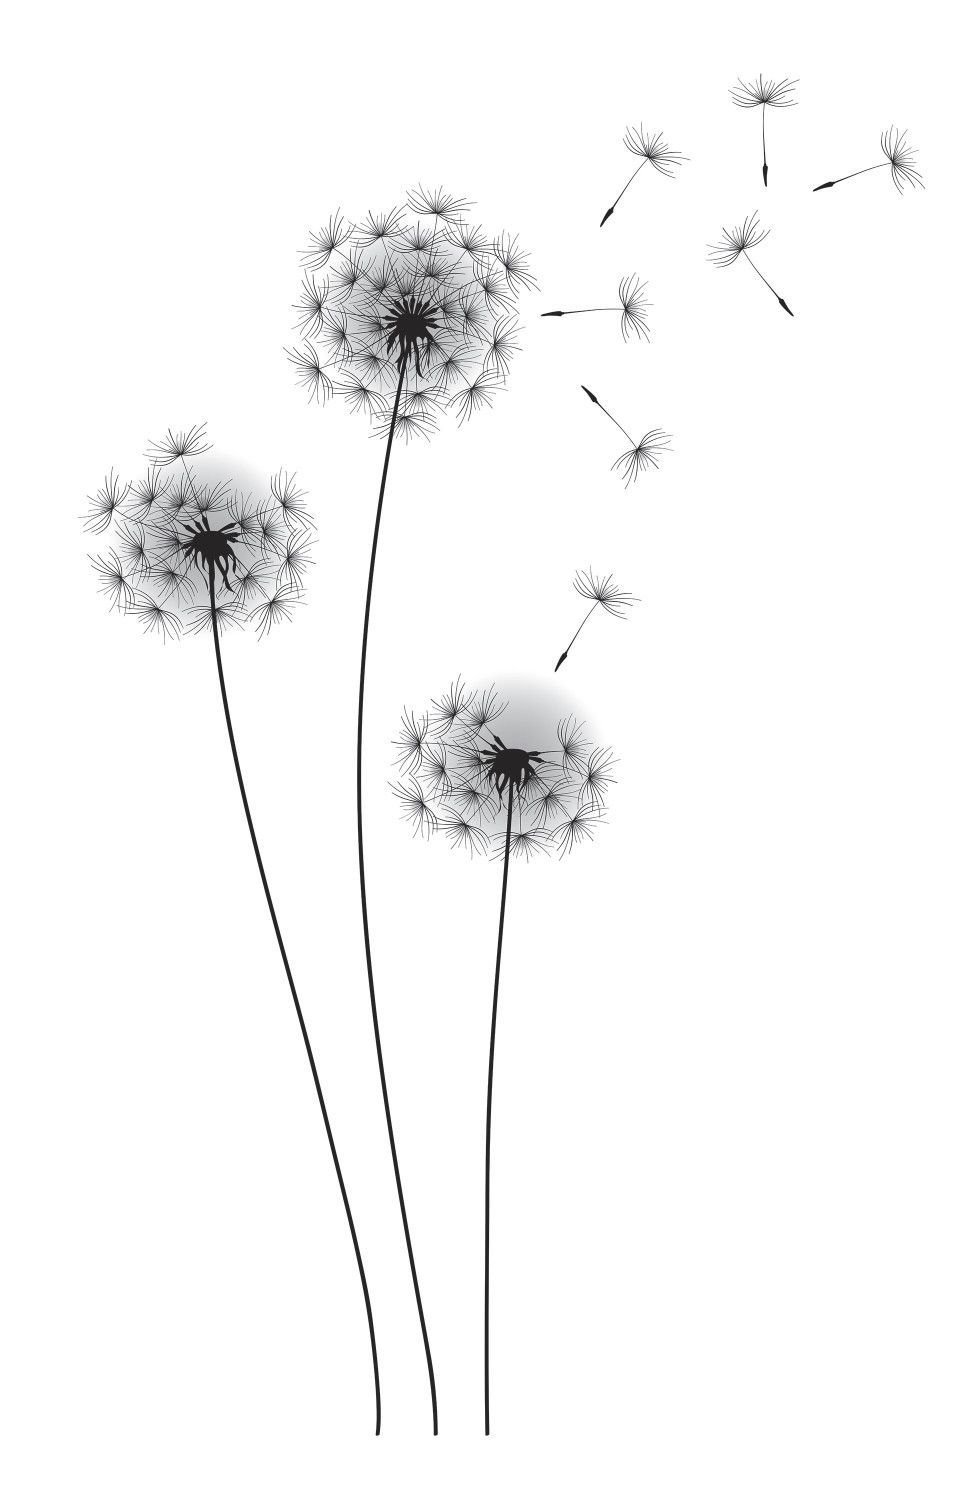 Whimsical Dandelion Wall Decal Dandelion Drawing Dandelion Wall Decal Dandelion Art